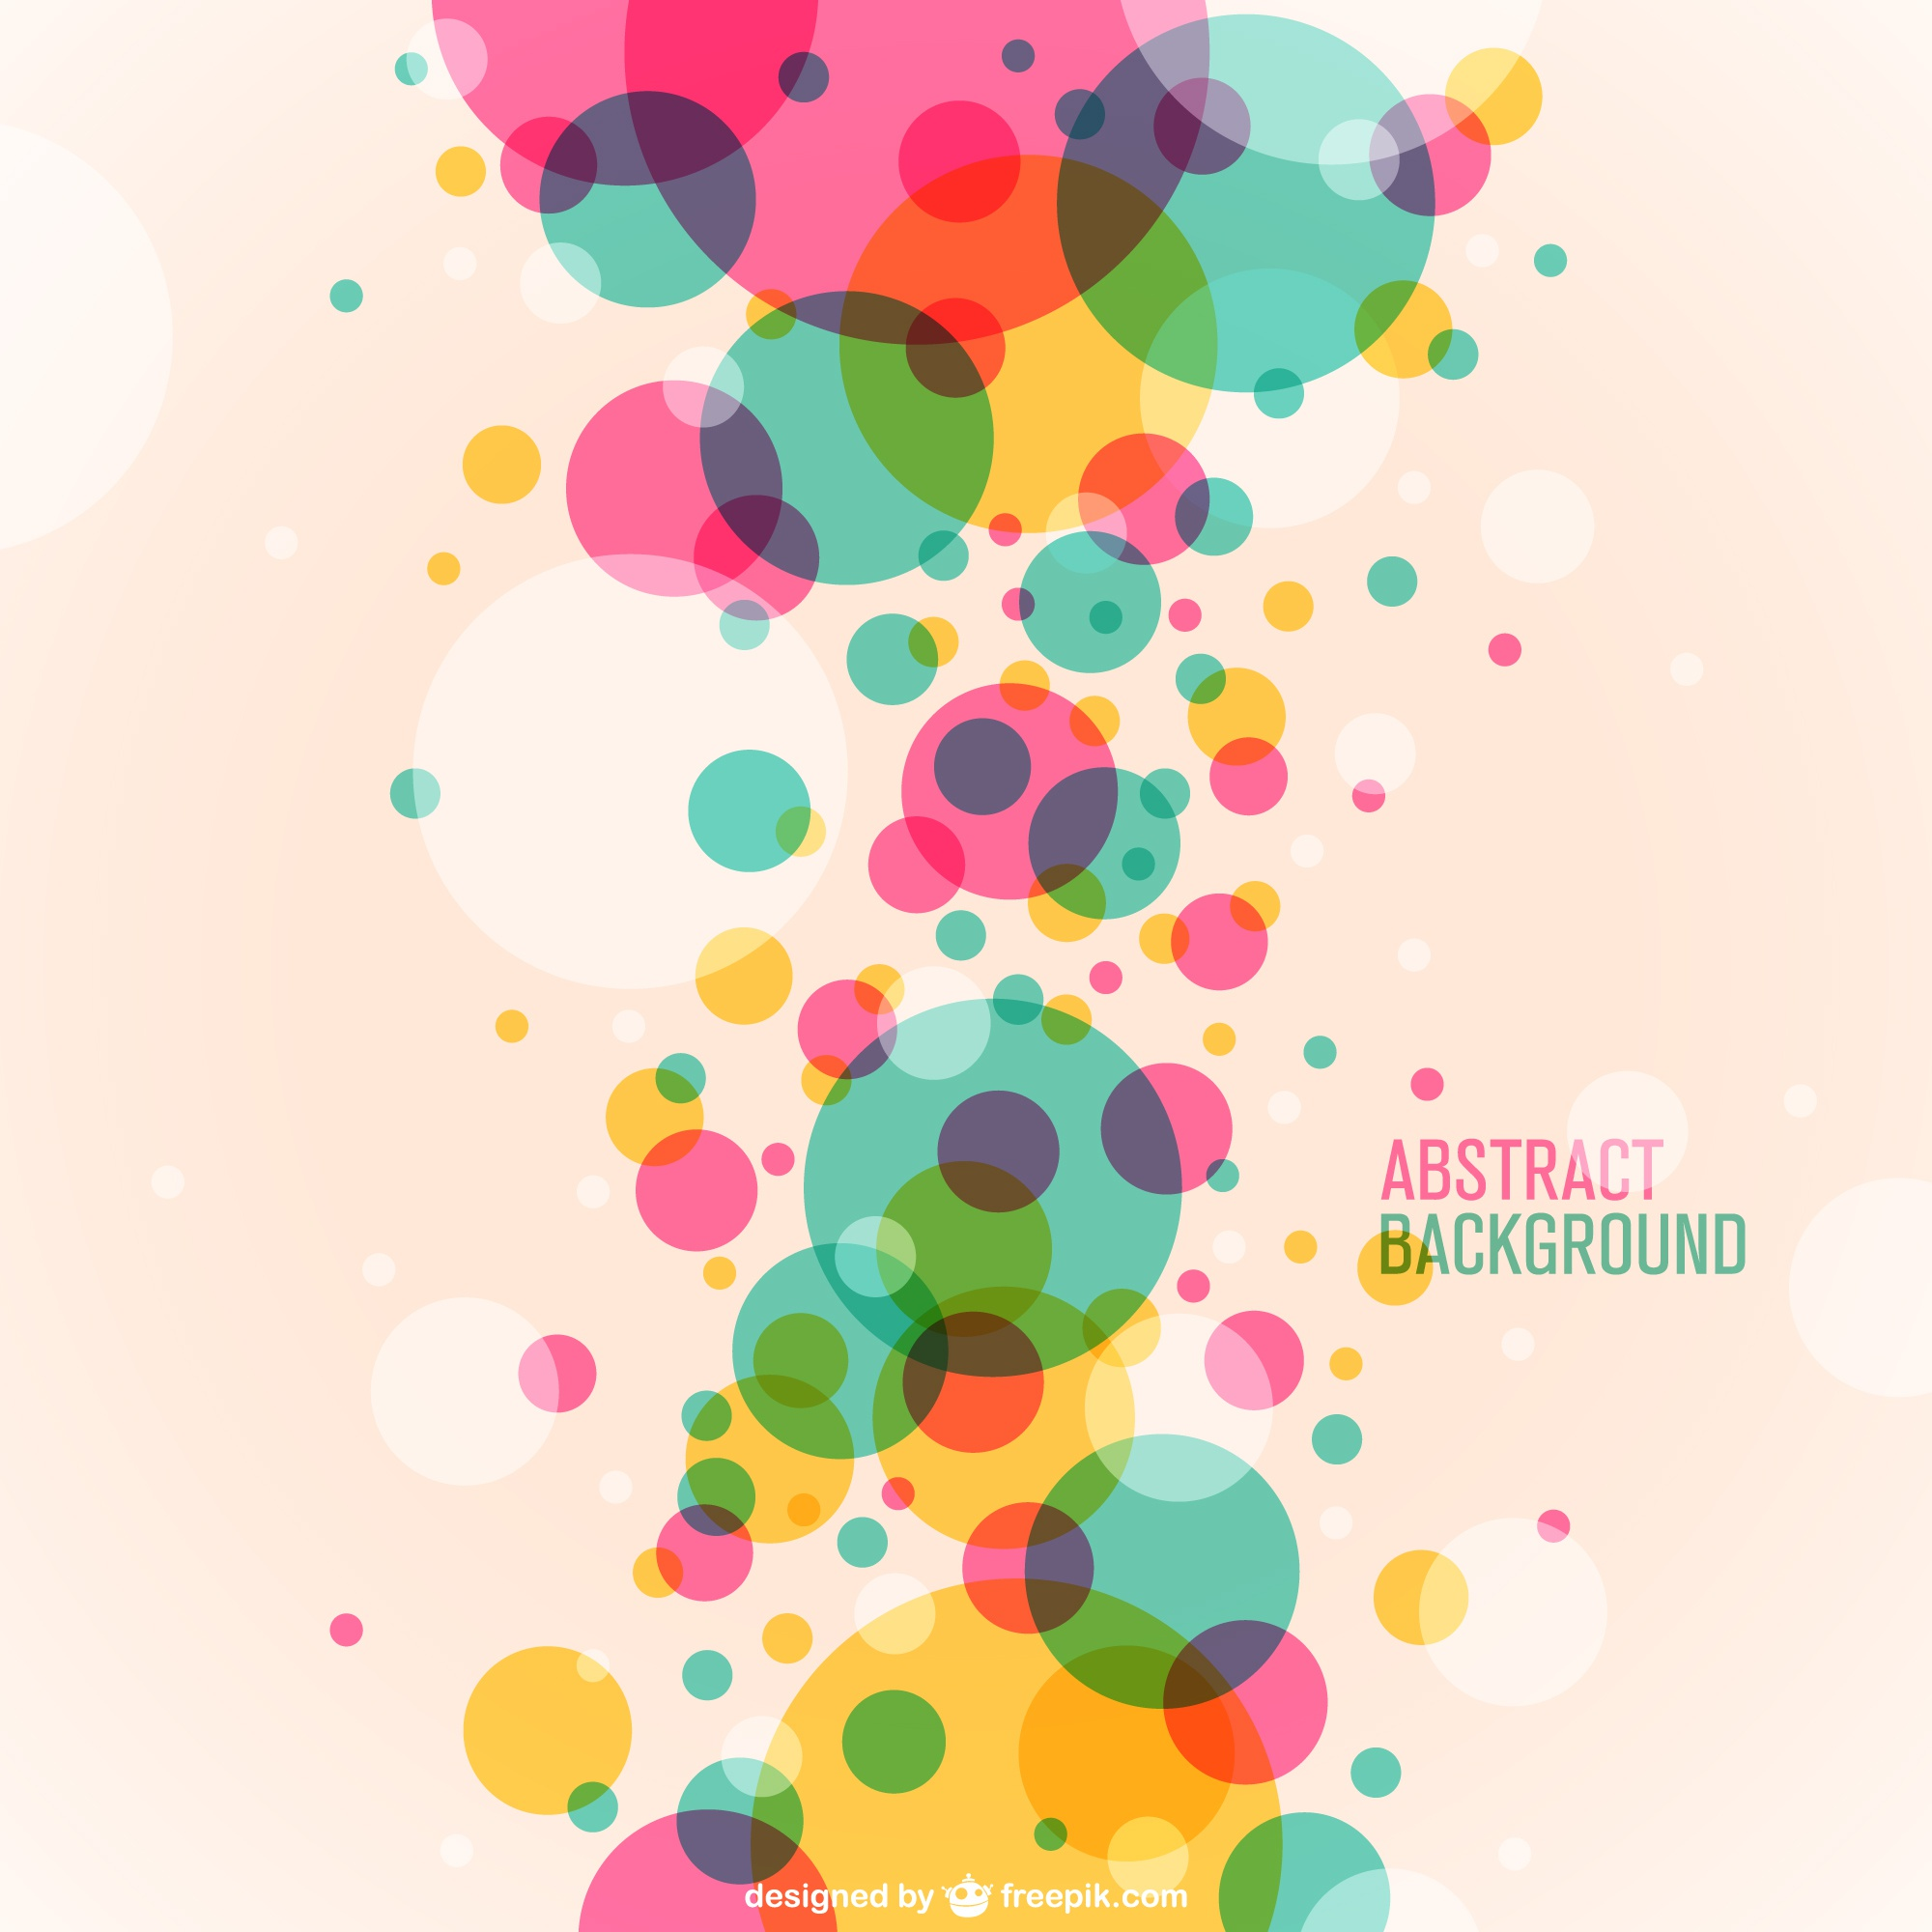 Circles vector free background